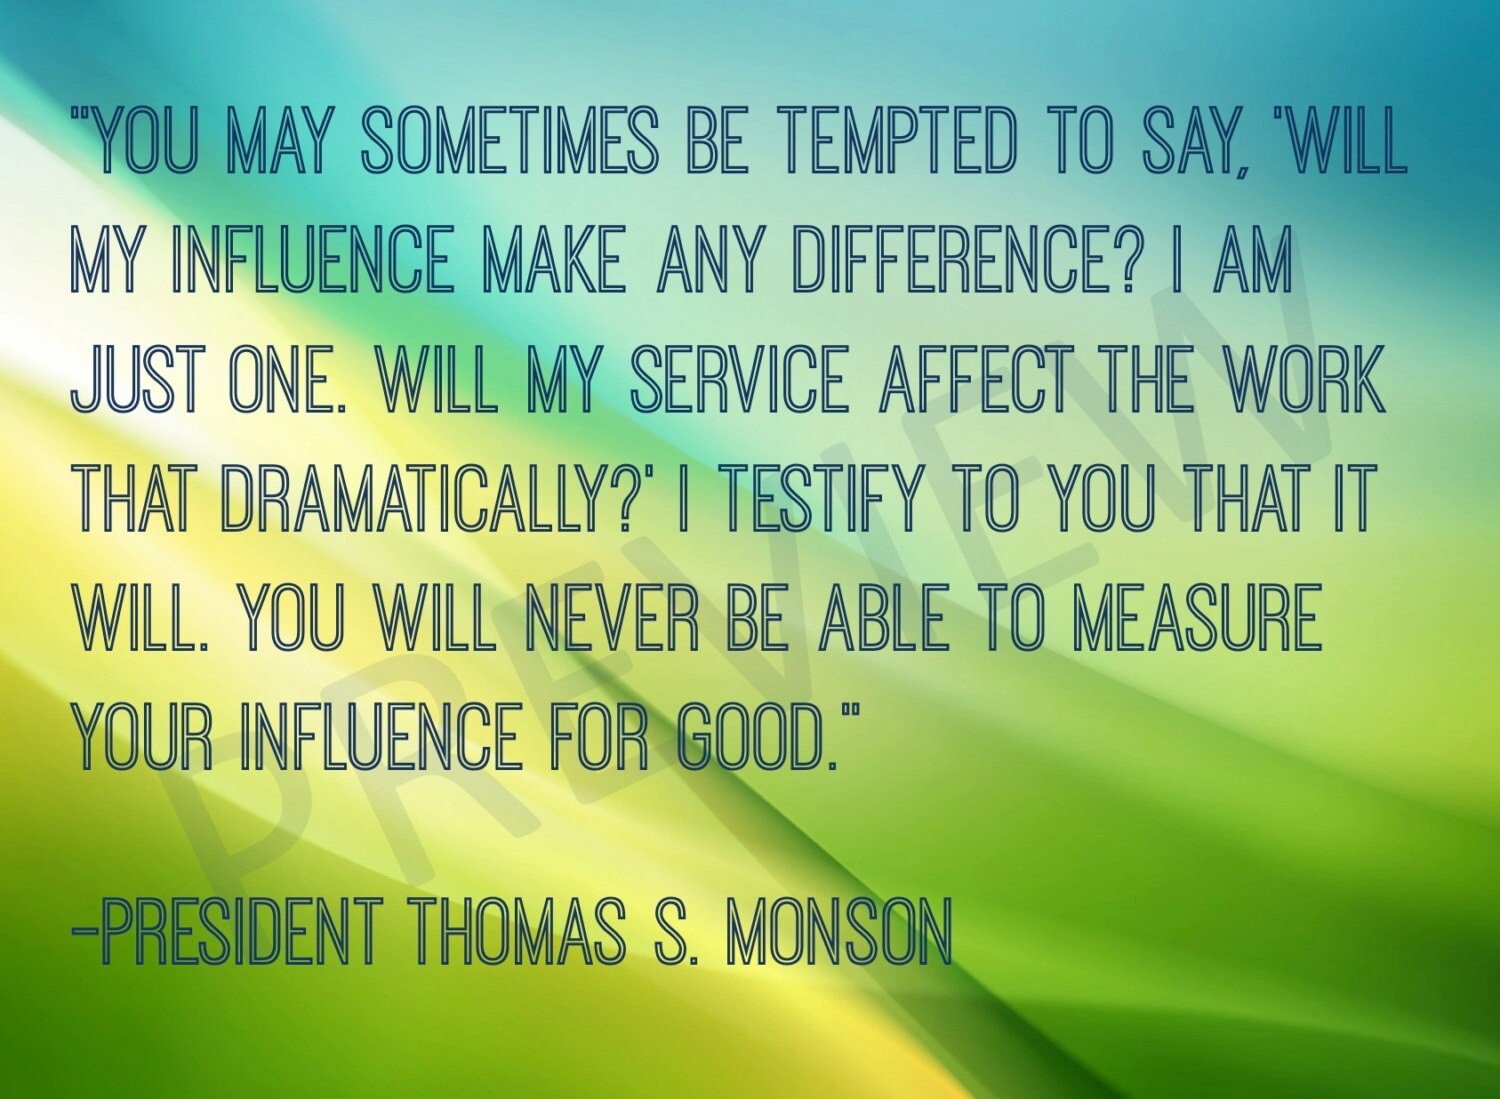 Lds Missionary Quotes Missionary Quote Lds Mormon Prophet President Thomas S Monson